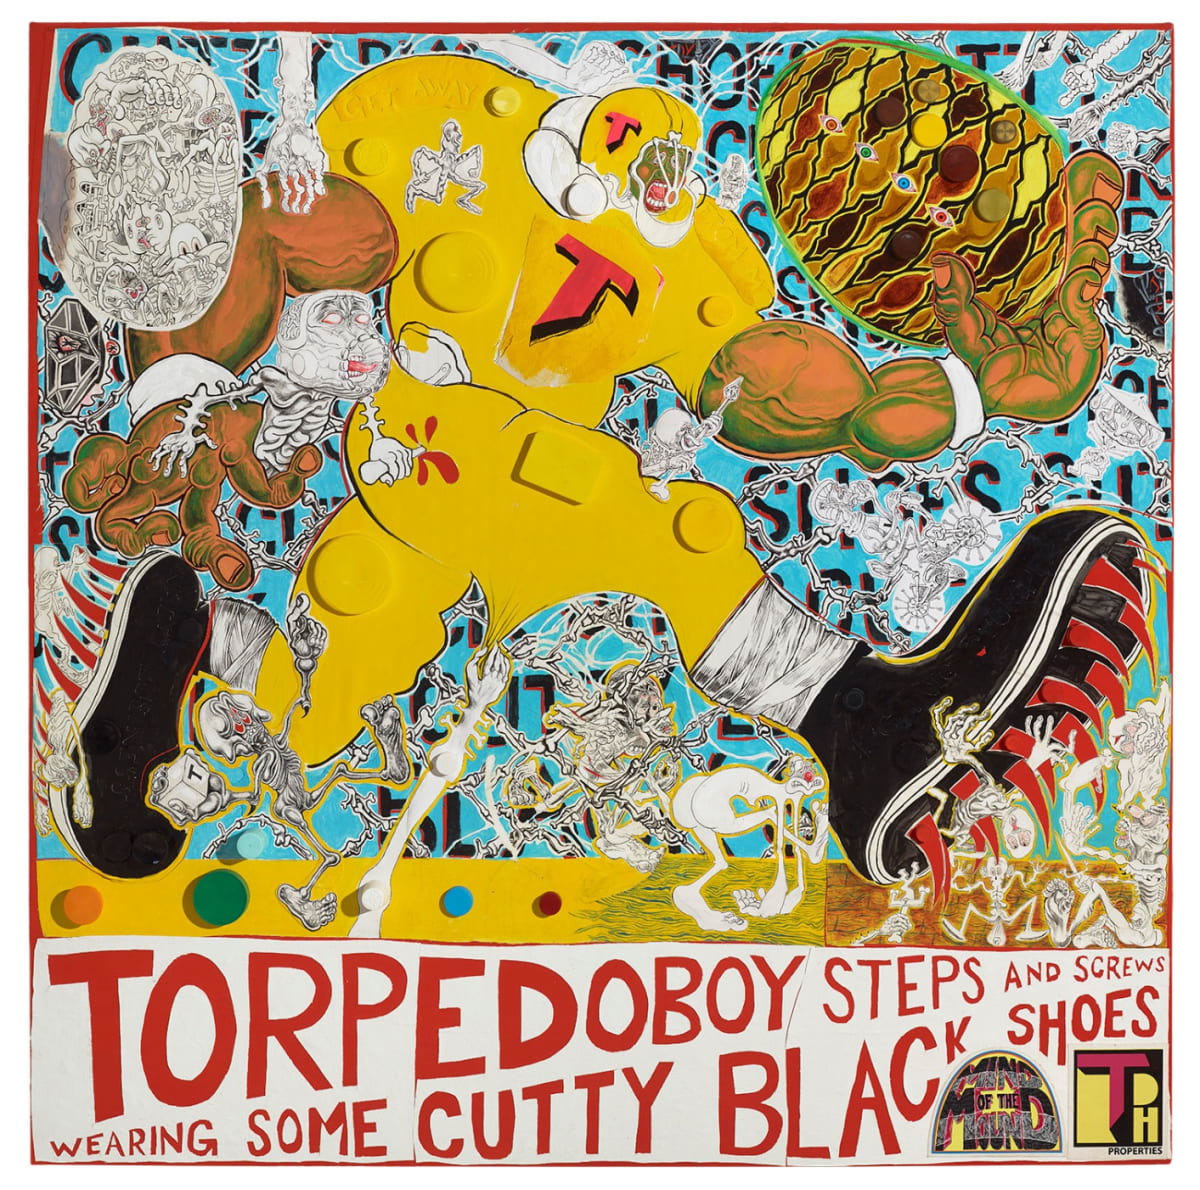 Trenton Doyle Hancock. Torpedoboy Steps and Screws Wearing Some Cutty Black Shoes, 2018